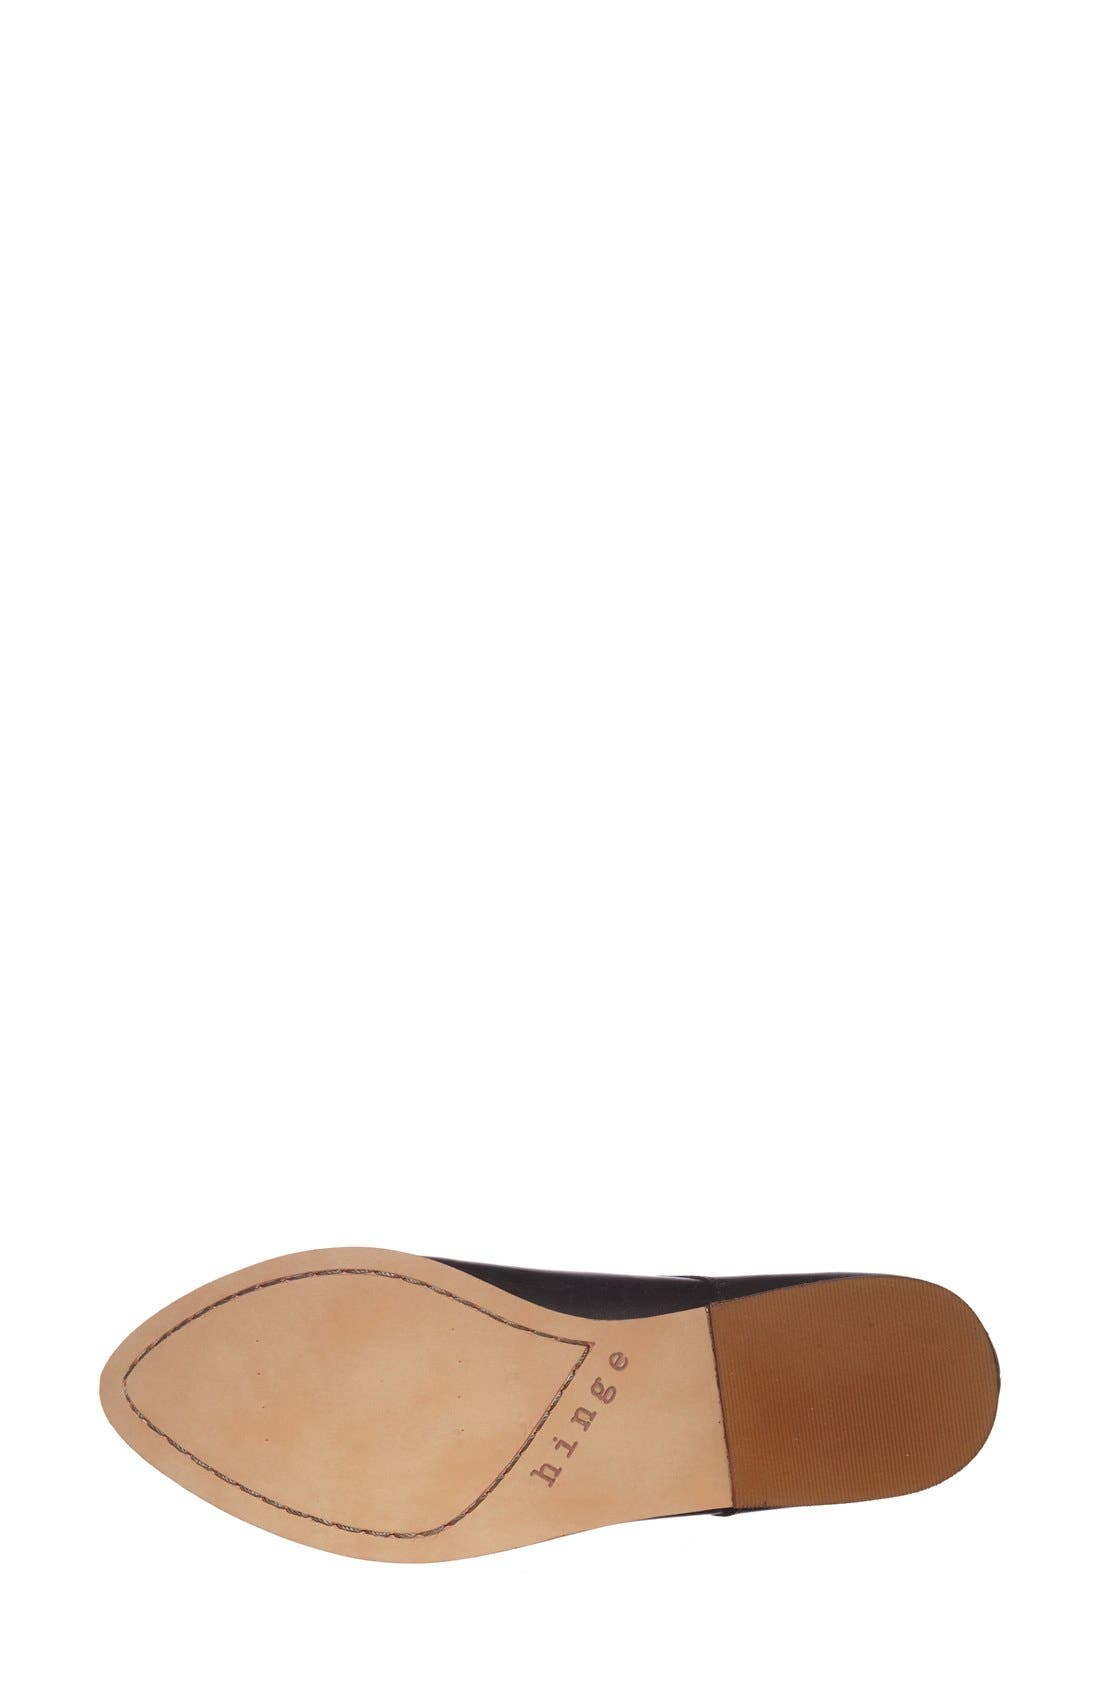 ,                             'Benito' Lace-Up Oxford,                             Alternate thumbnail 2, color,                             001